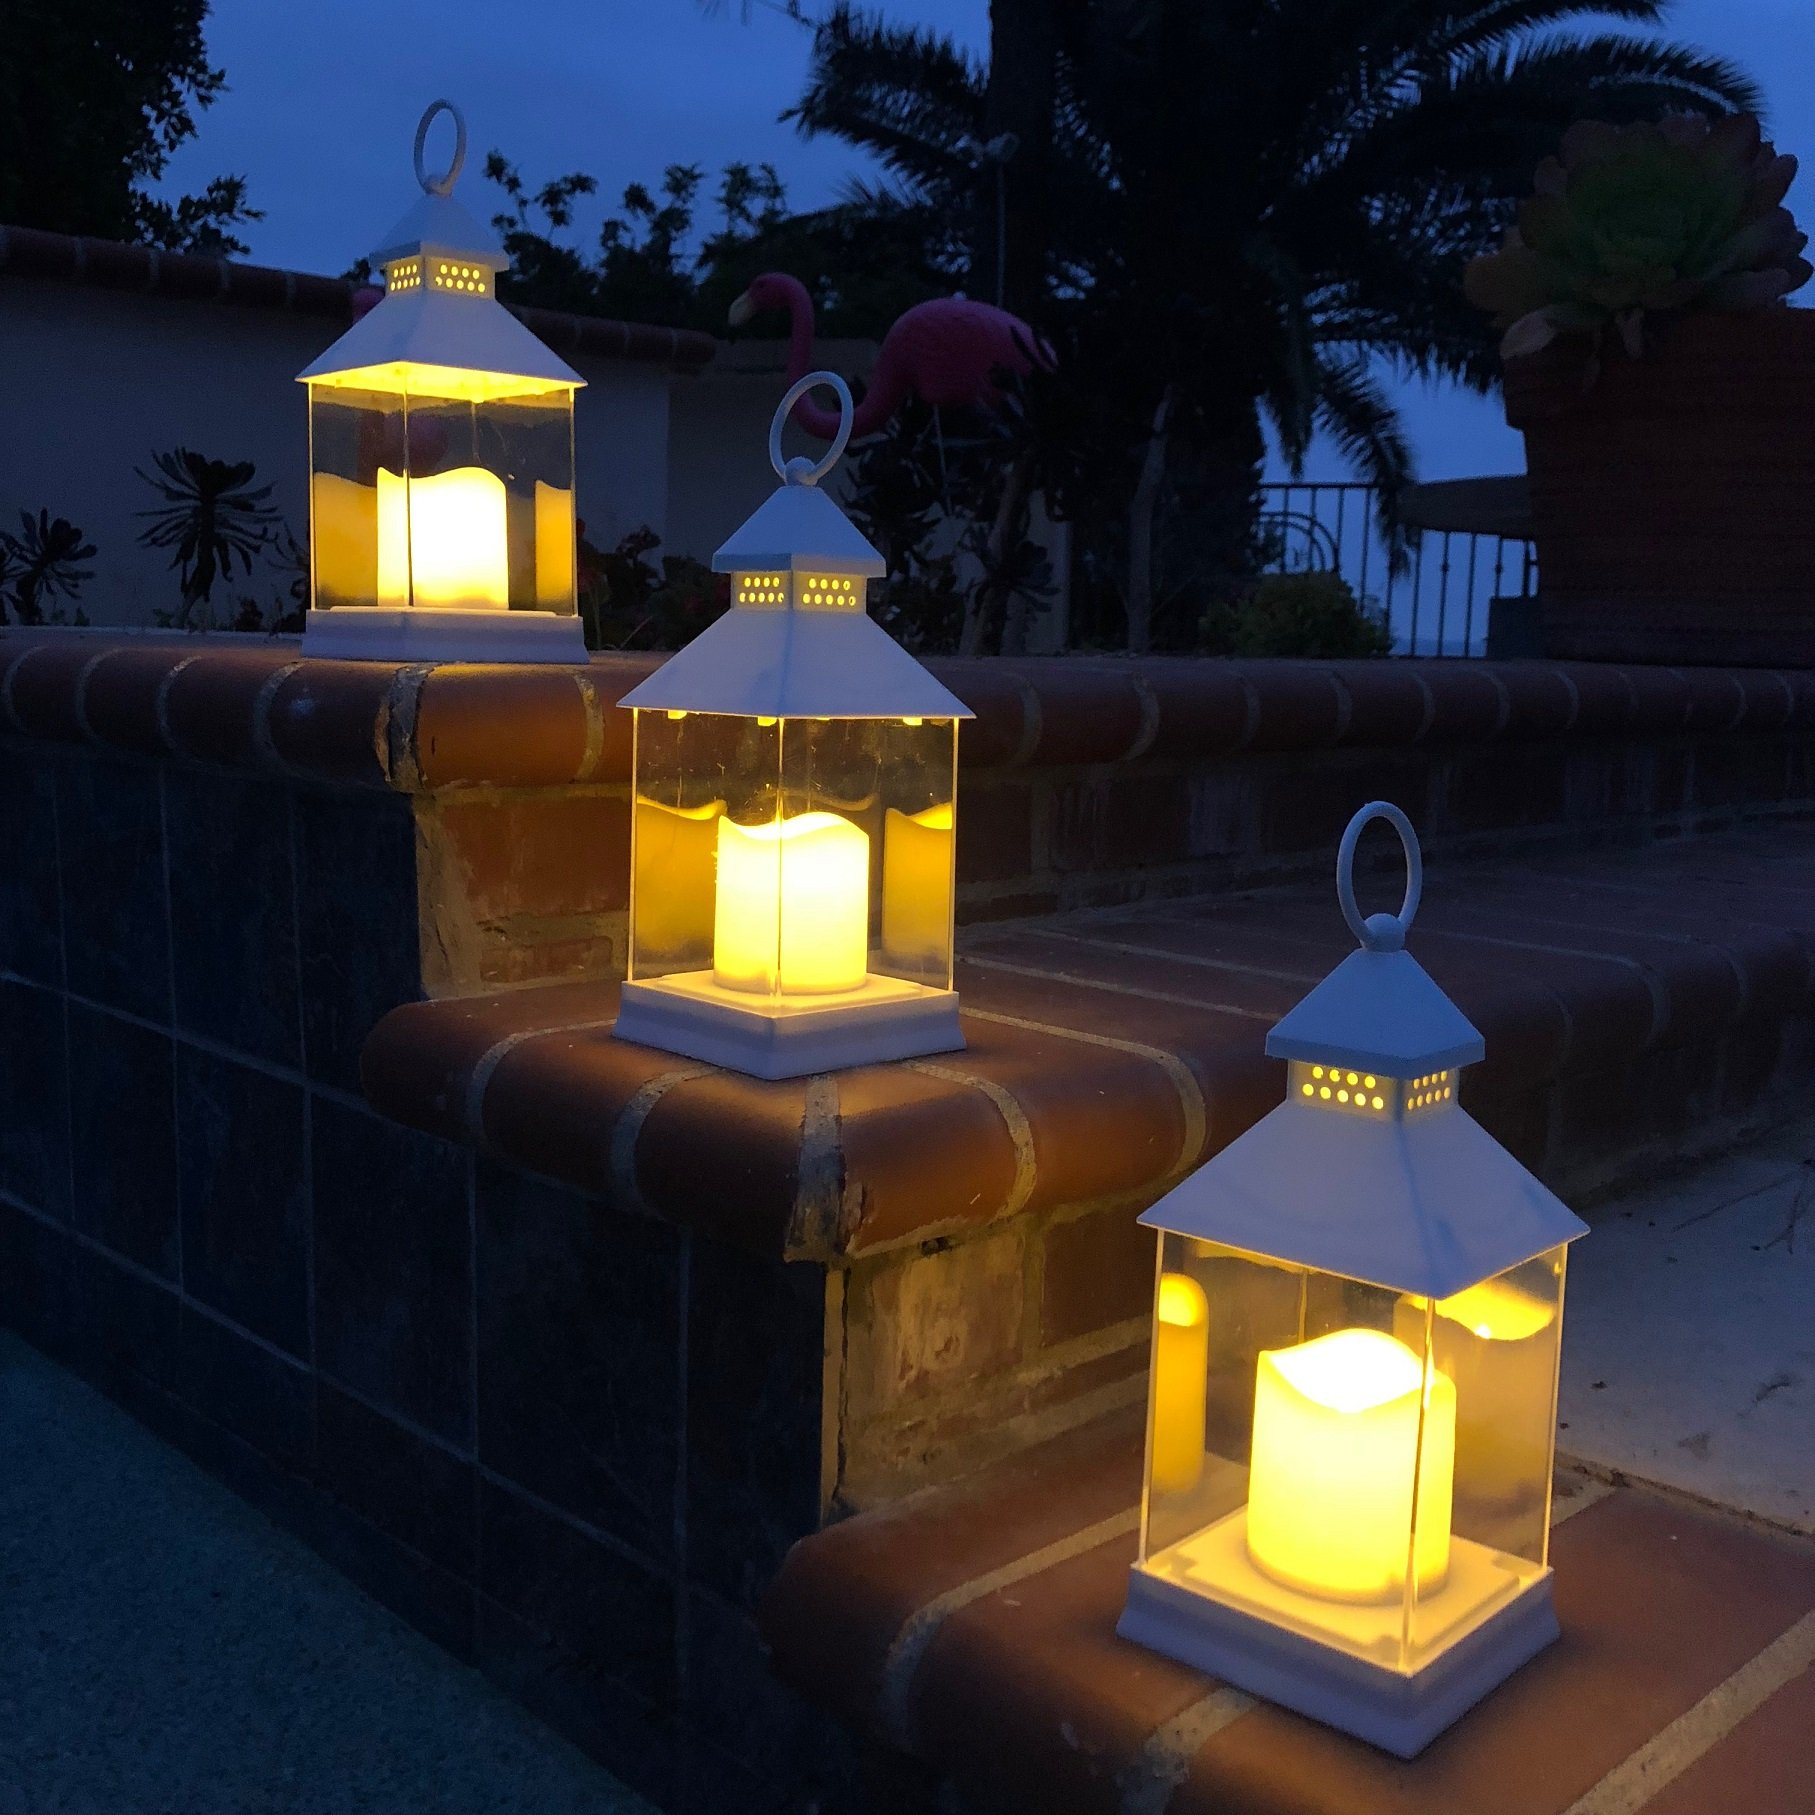 Just In Time for Spring {12 Pc SET} - 10'' Decorative Lanterns With Flameless LED Lighted Candle 5 Hr Timer Modern Look Indoor Outdoor Home, Garden, Weddings - Includes Bonus String Lights! White. by The Nifty Nook (Image #3)